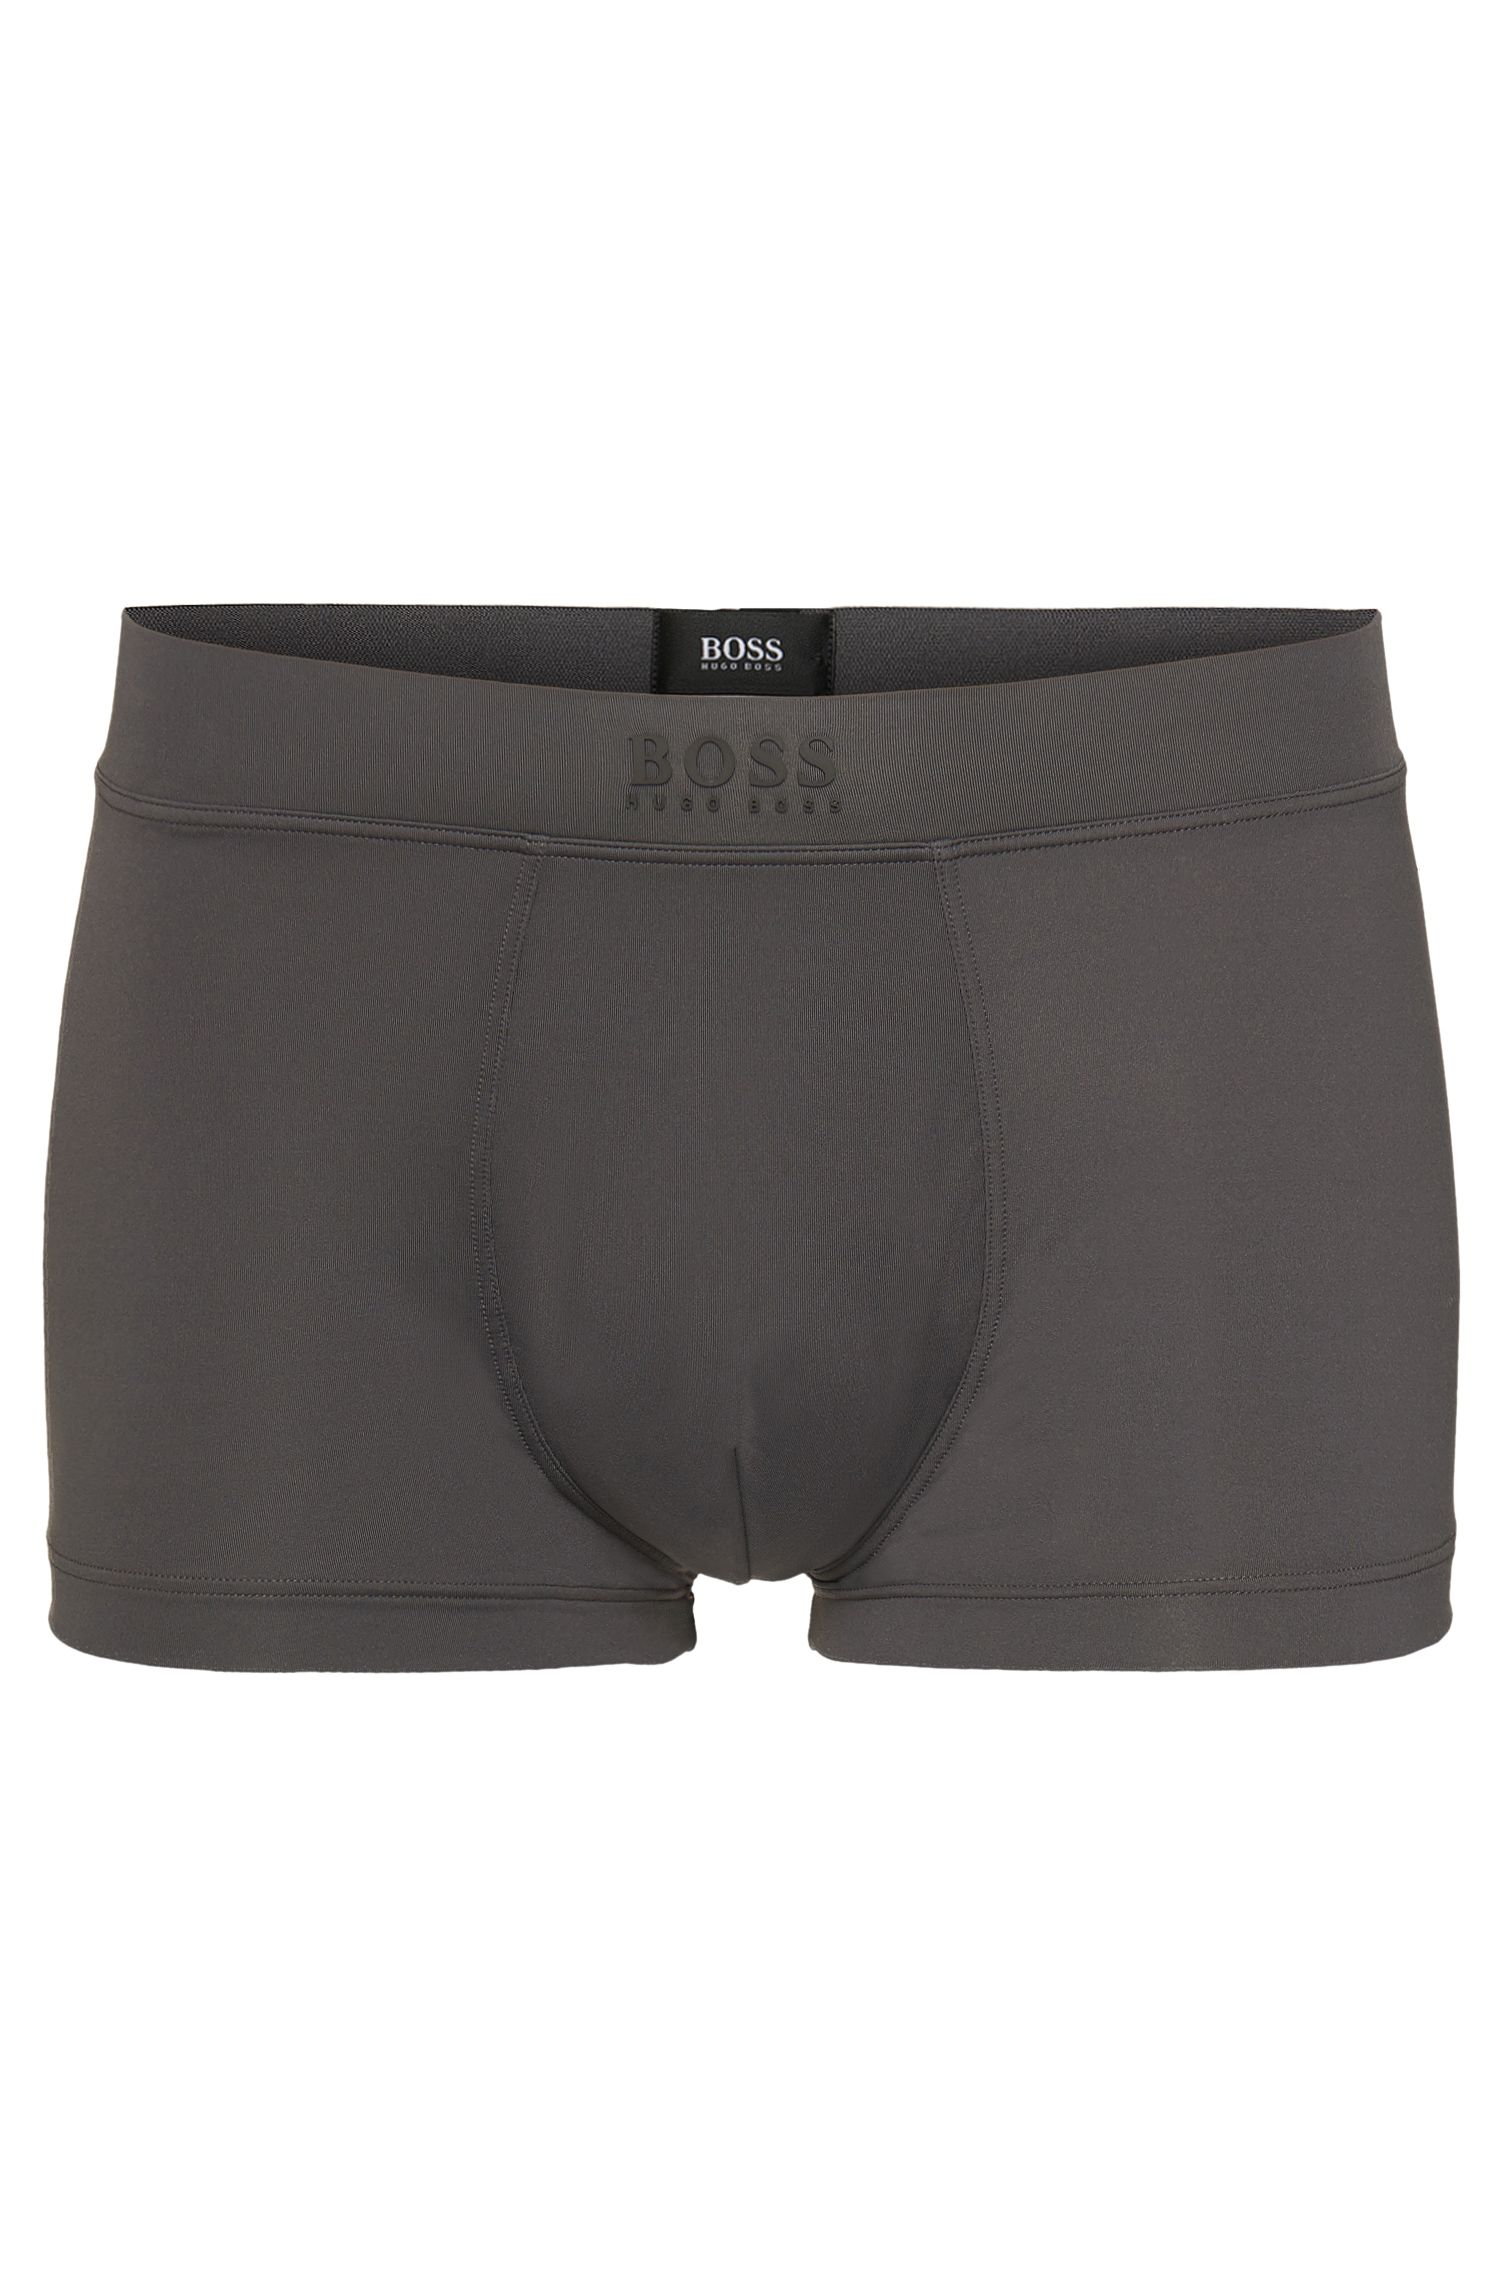 Boxer shorts in a stretchy fabric blend: 'Boxer CW BM'